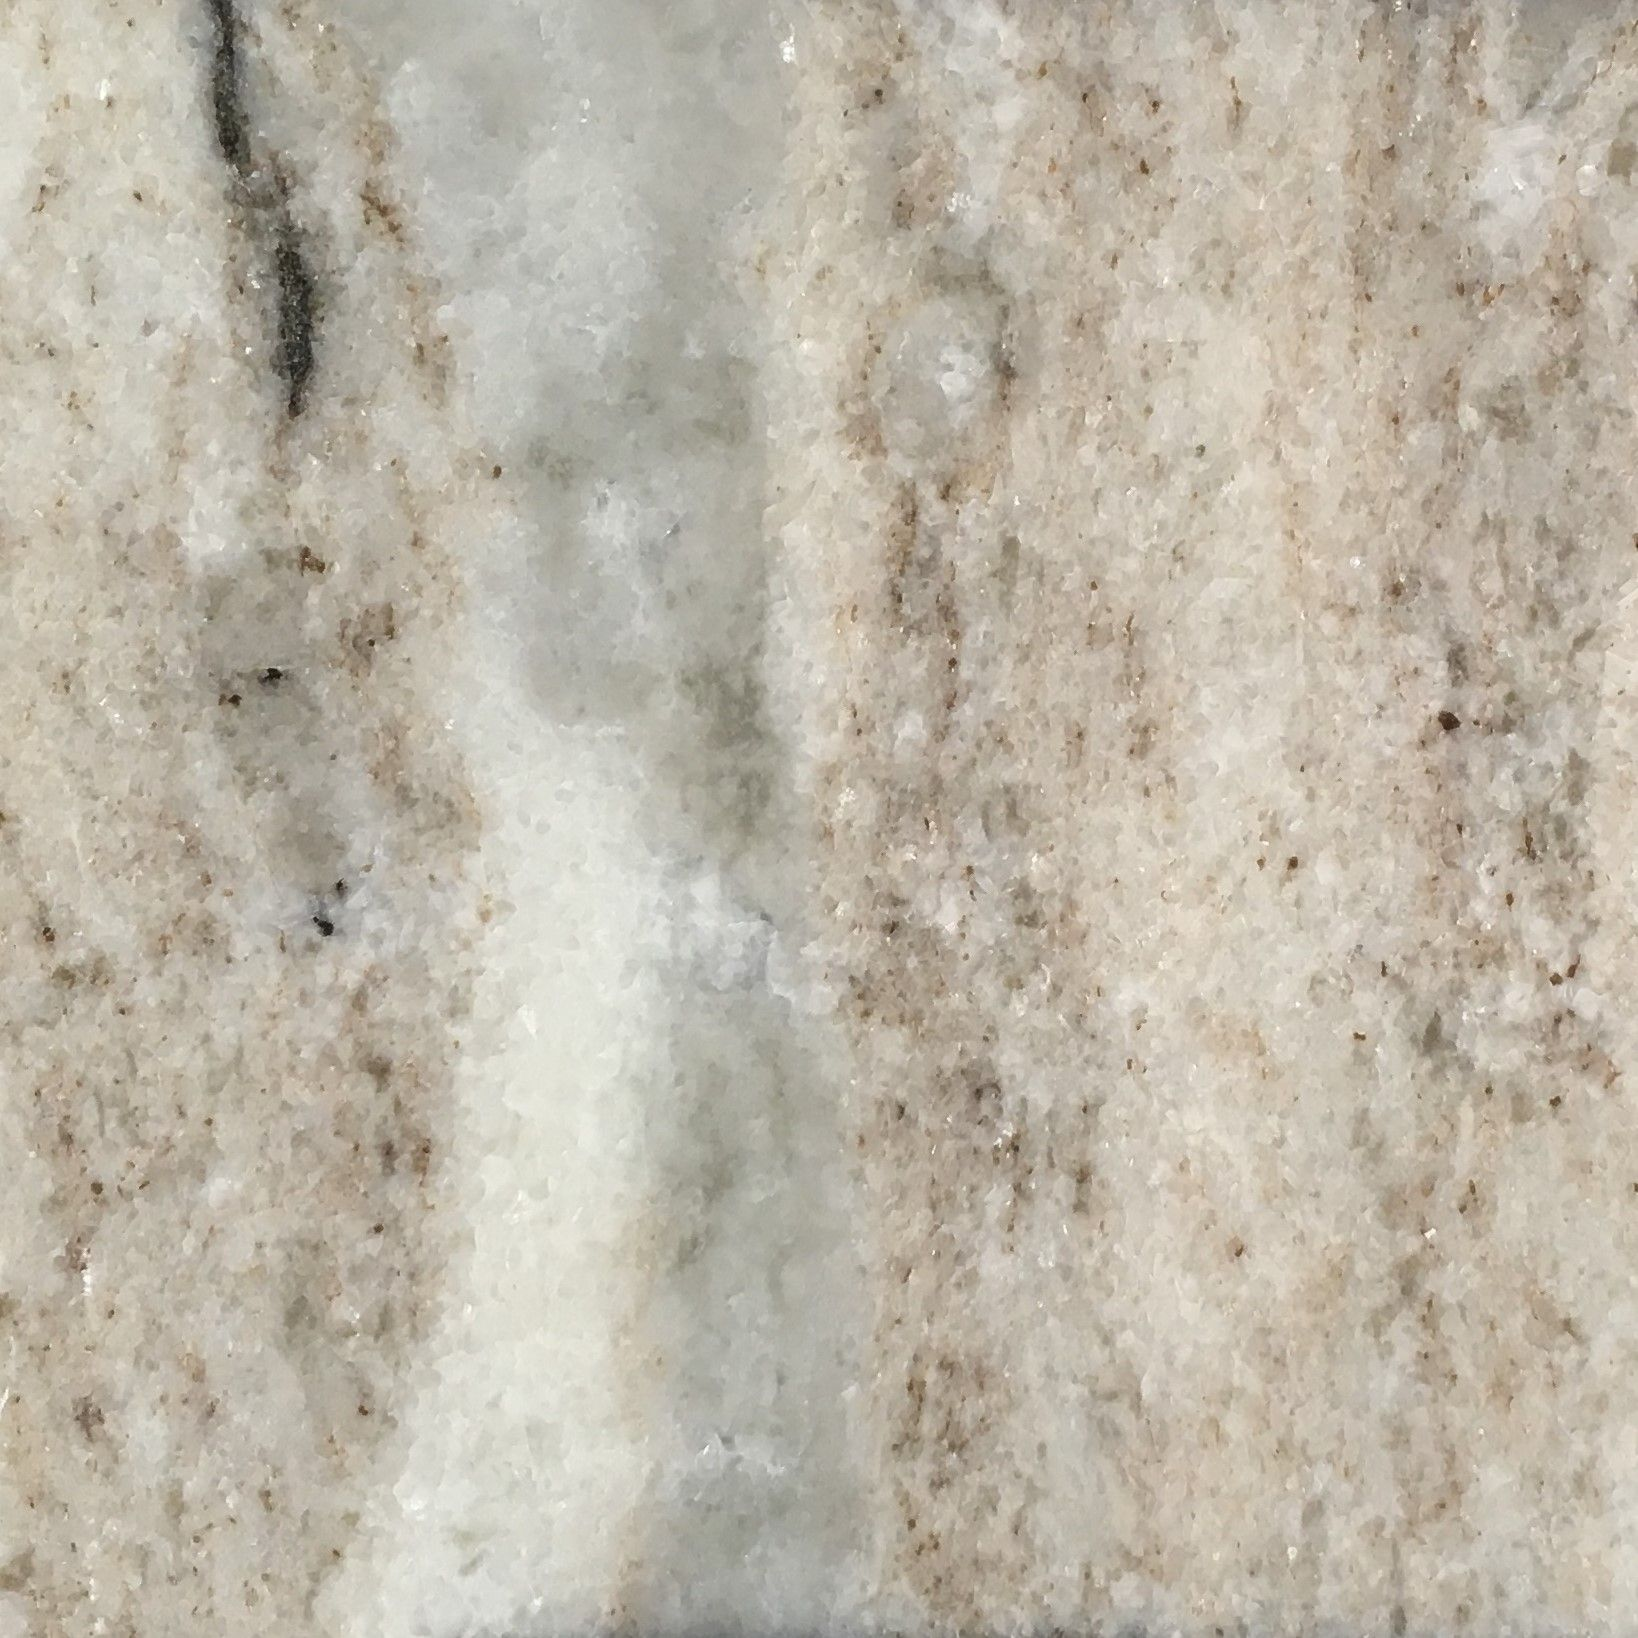 Level 3 Marble Tuscan Brown Polished Tuscan Countertops Luxury Kitchen